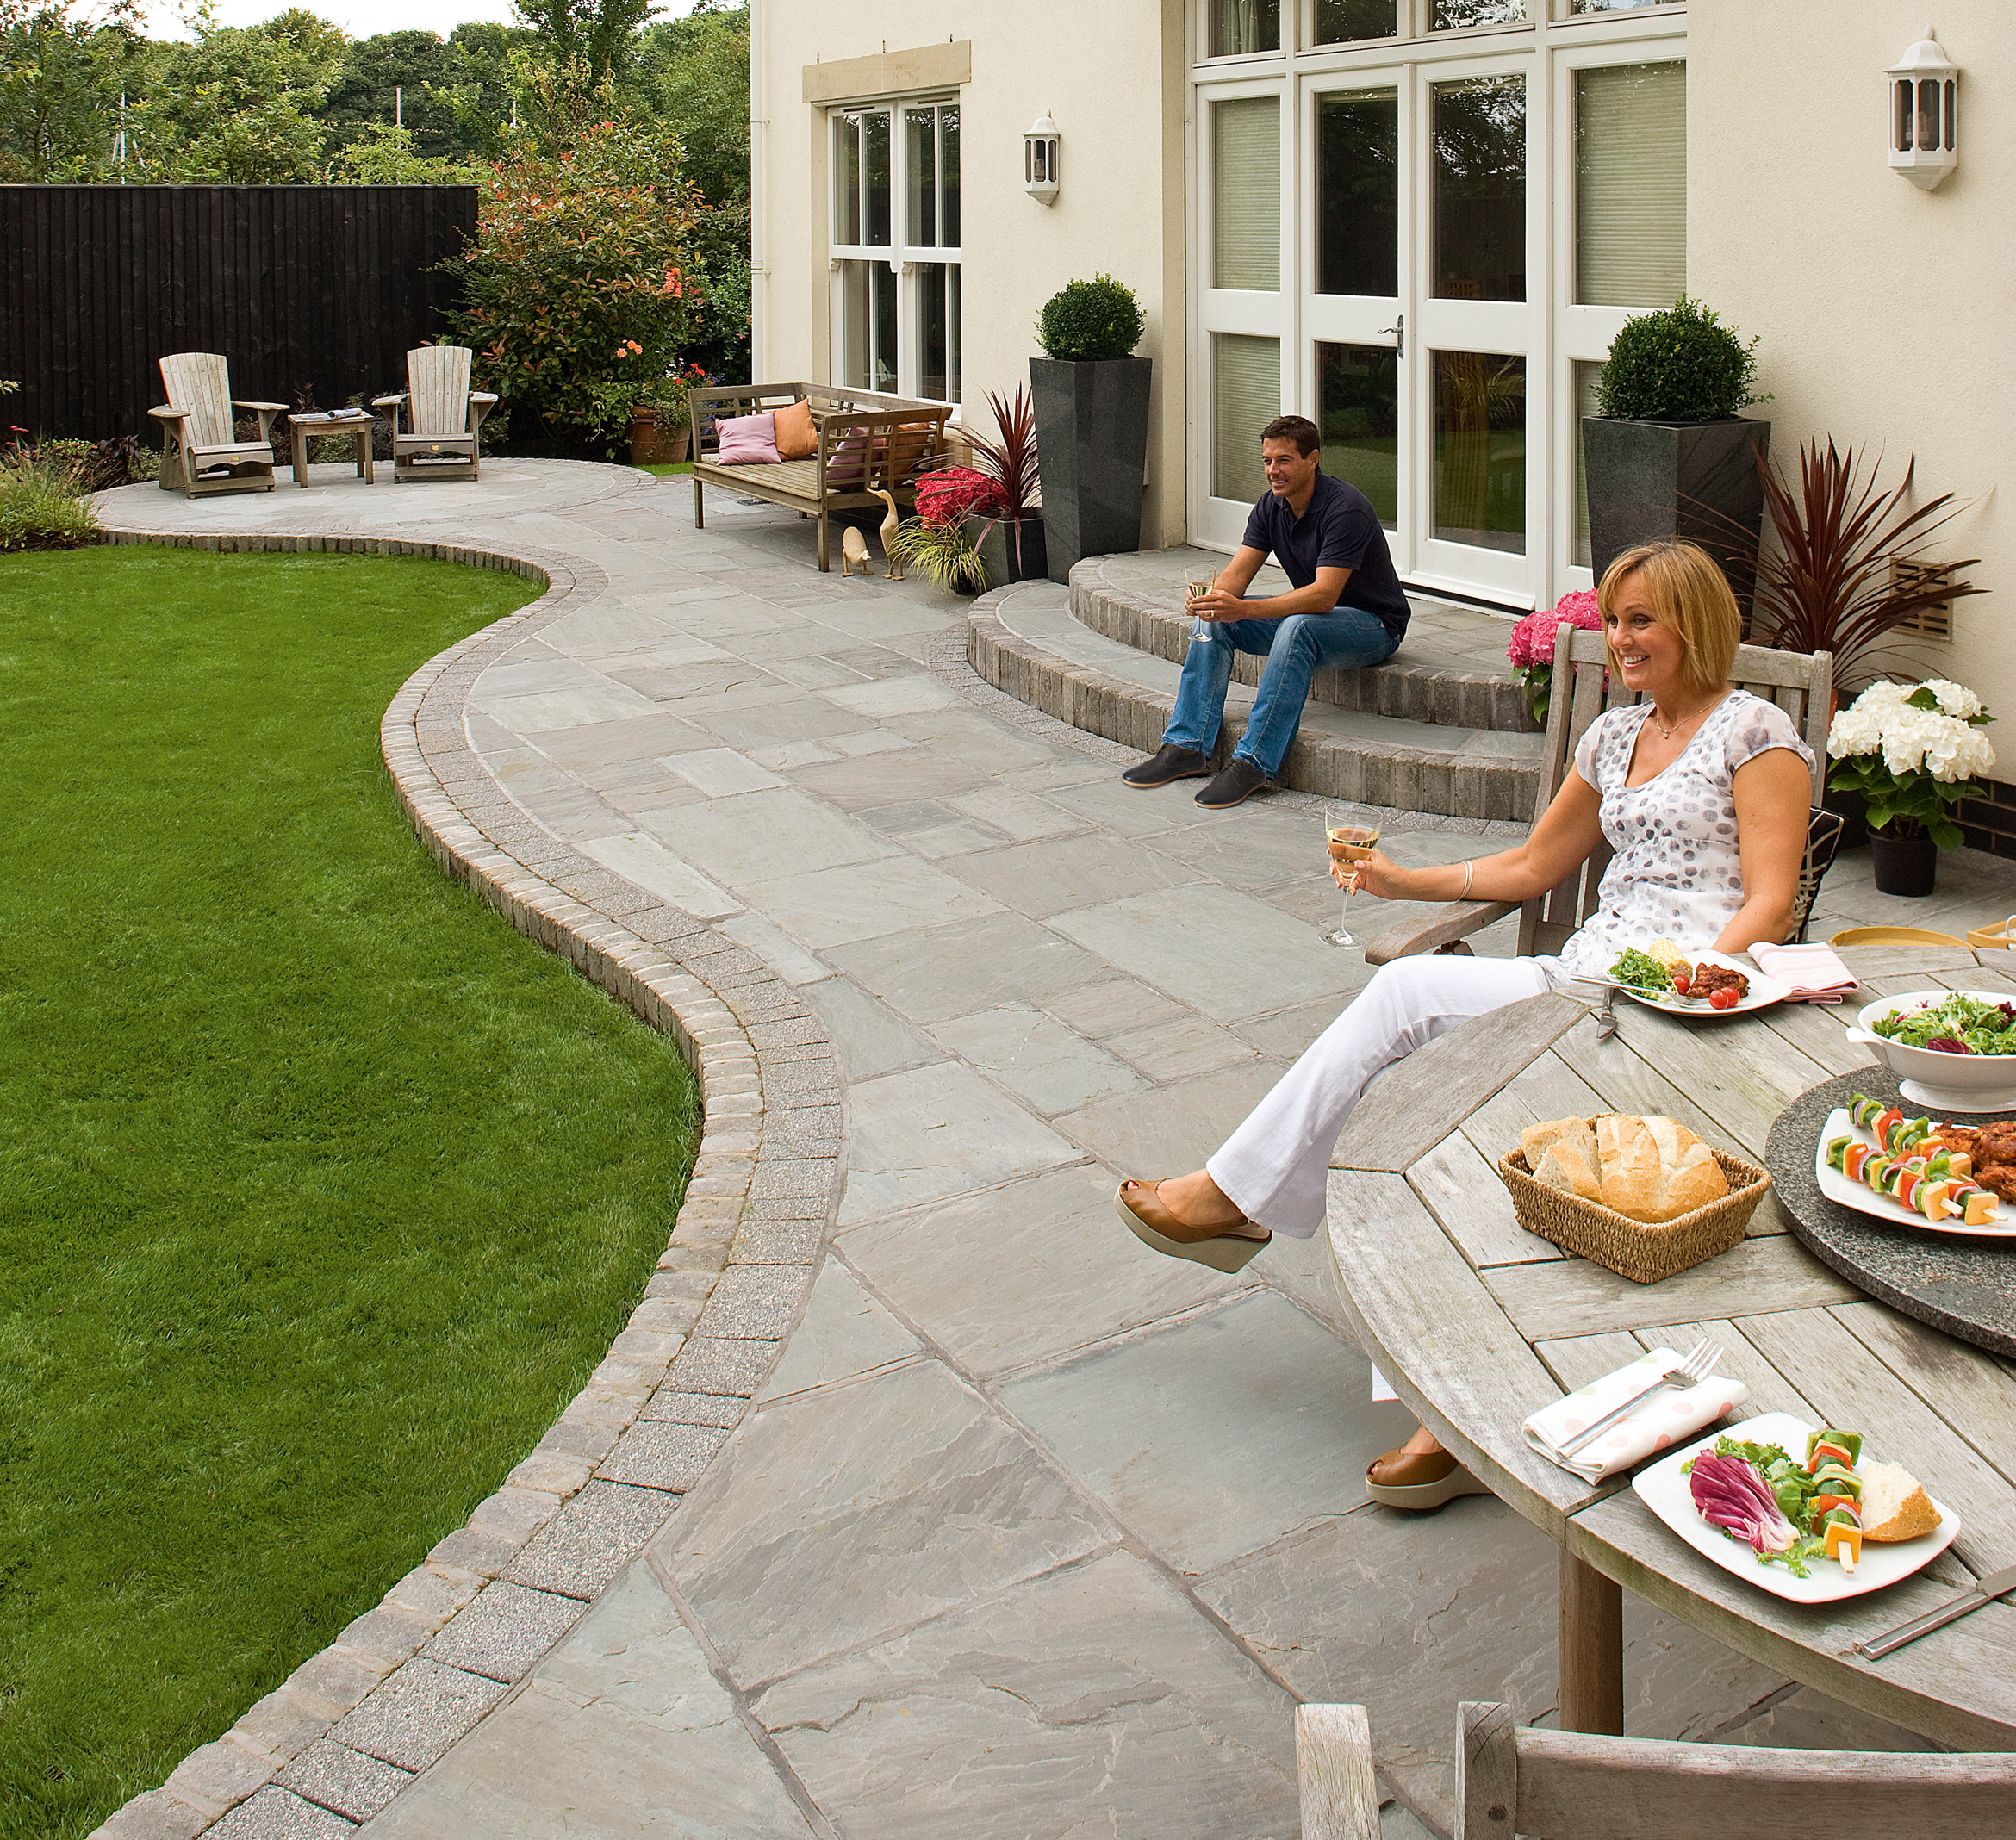 Image by Unilock picturingtheFairstone natural stone paver.